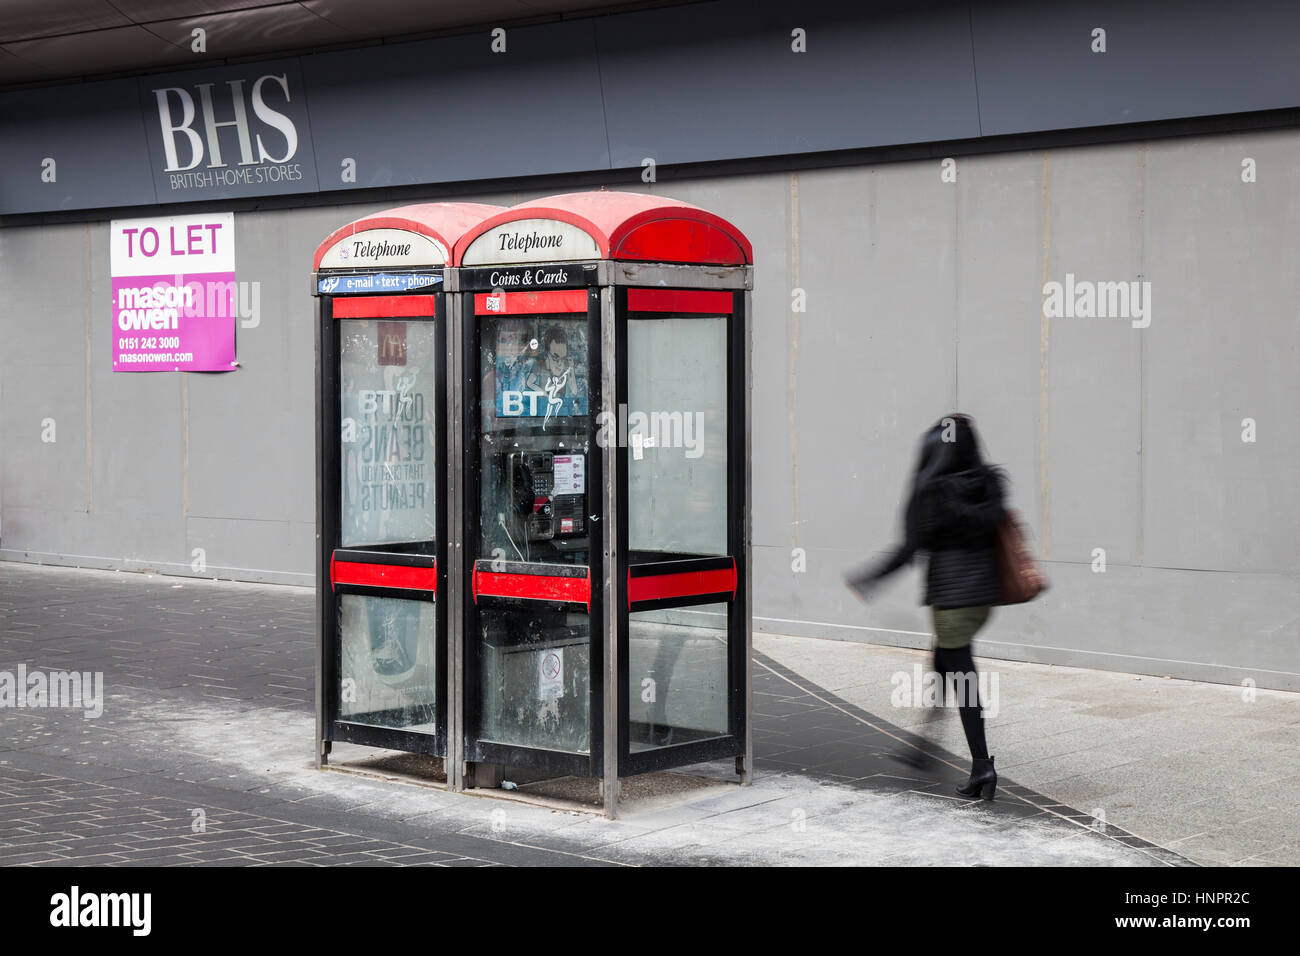 BT KX100 Disused, dirty, redundant red BT Telephone Boxes outside BHS in Liverpool City centre, Merseyside, UK - Stock Image